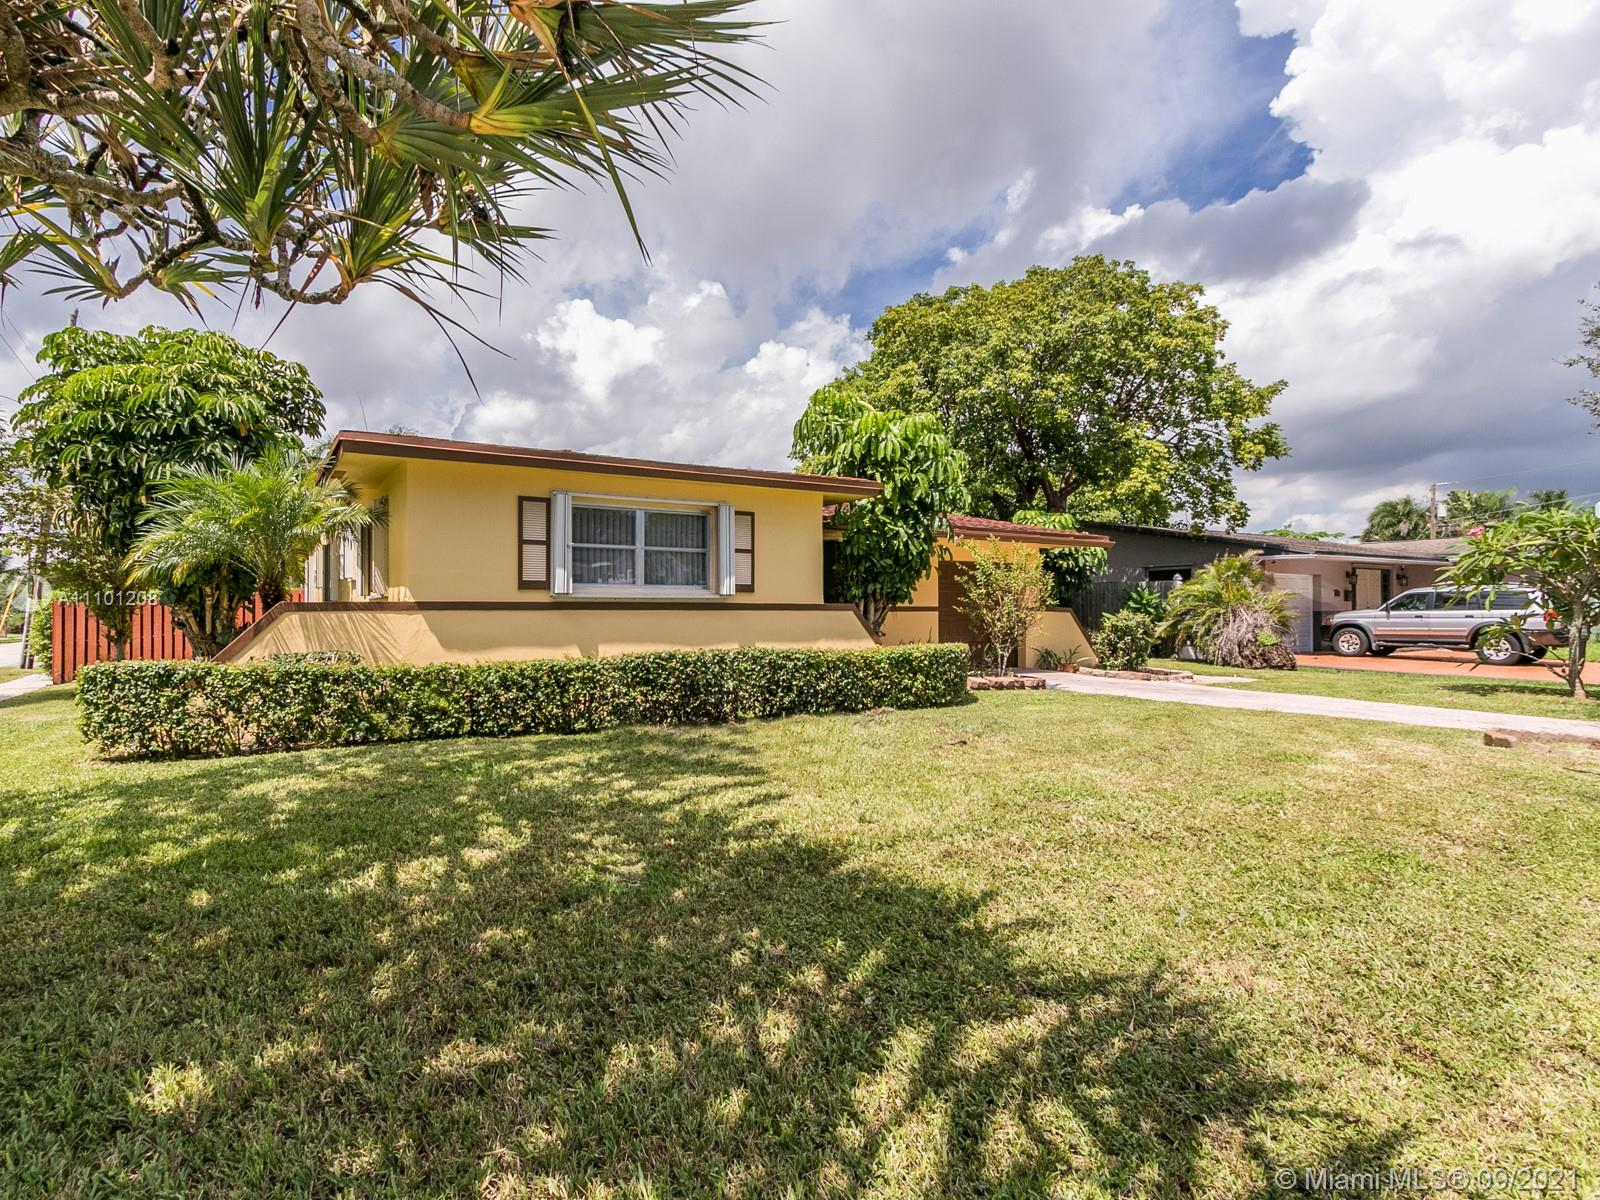 Hollywood Little Ranches - 700 N 28th Ave, Hollywood, FL 33020